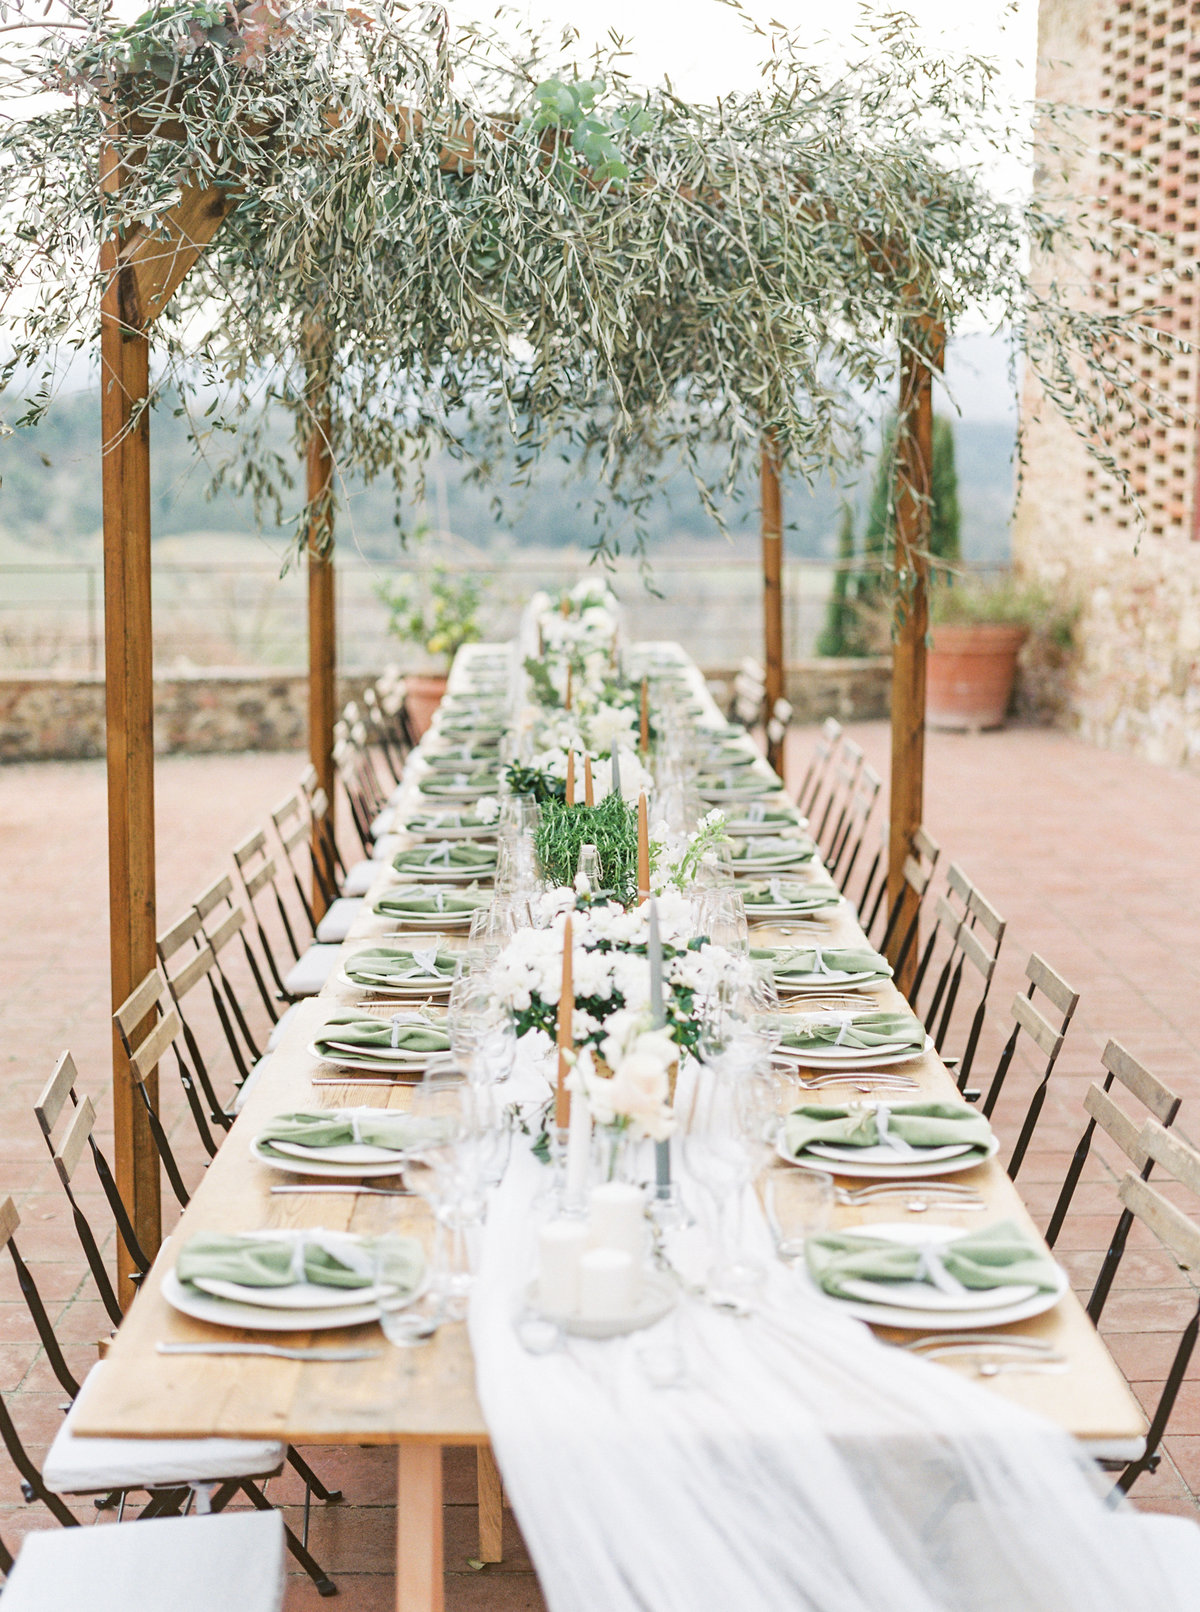 Tuscany Wedding Erica Nick - Lauren Fair Photography334